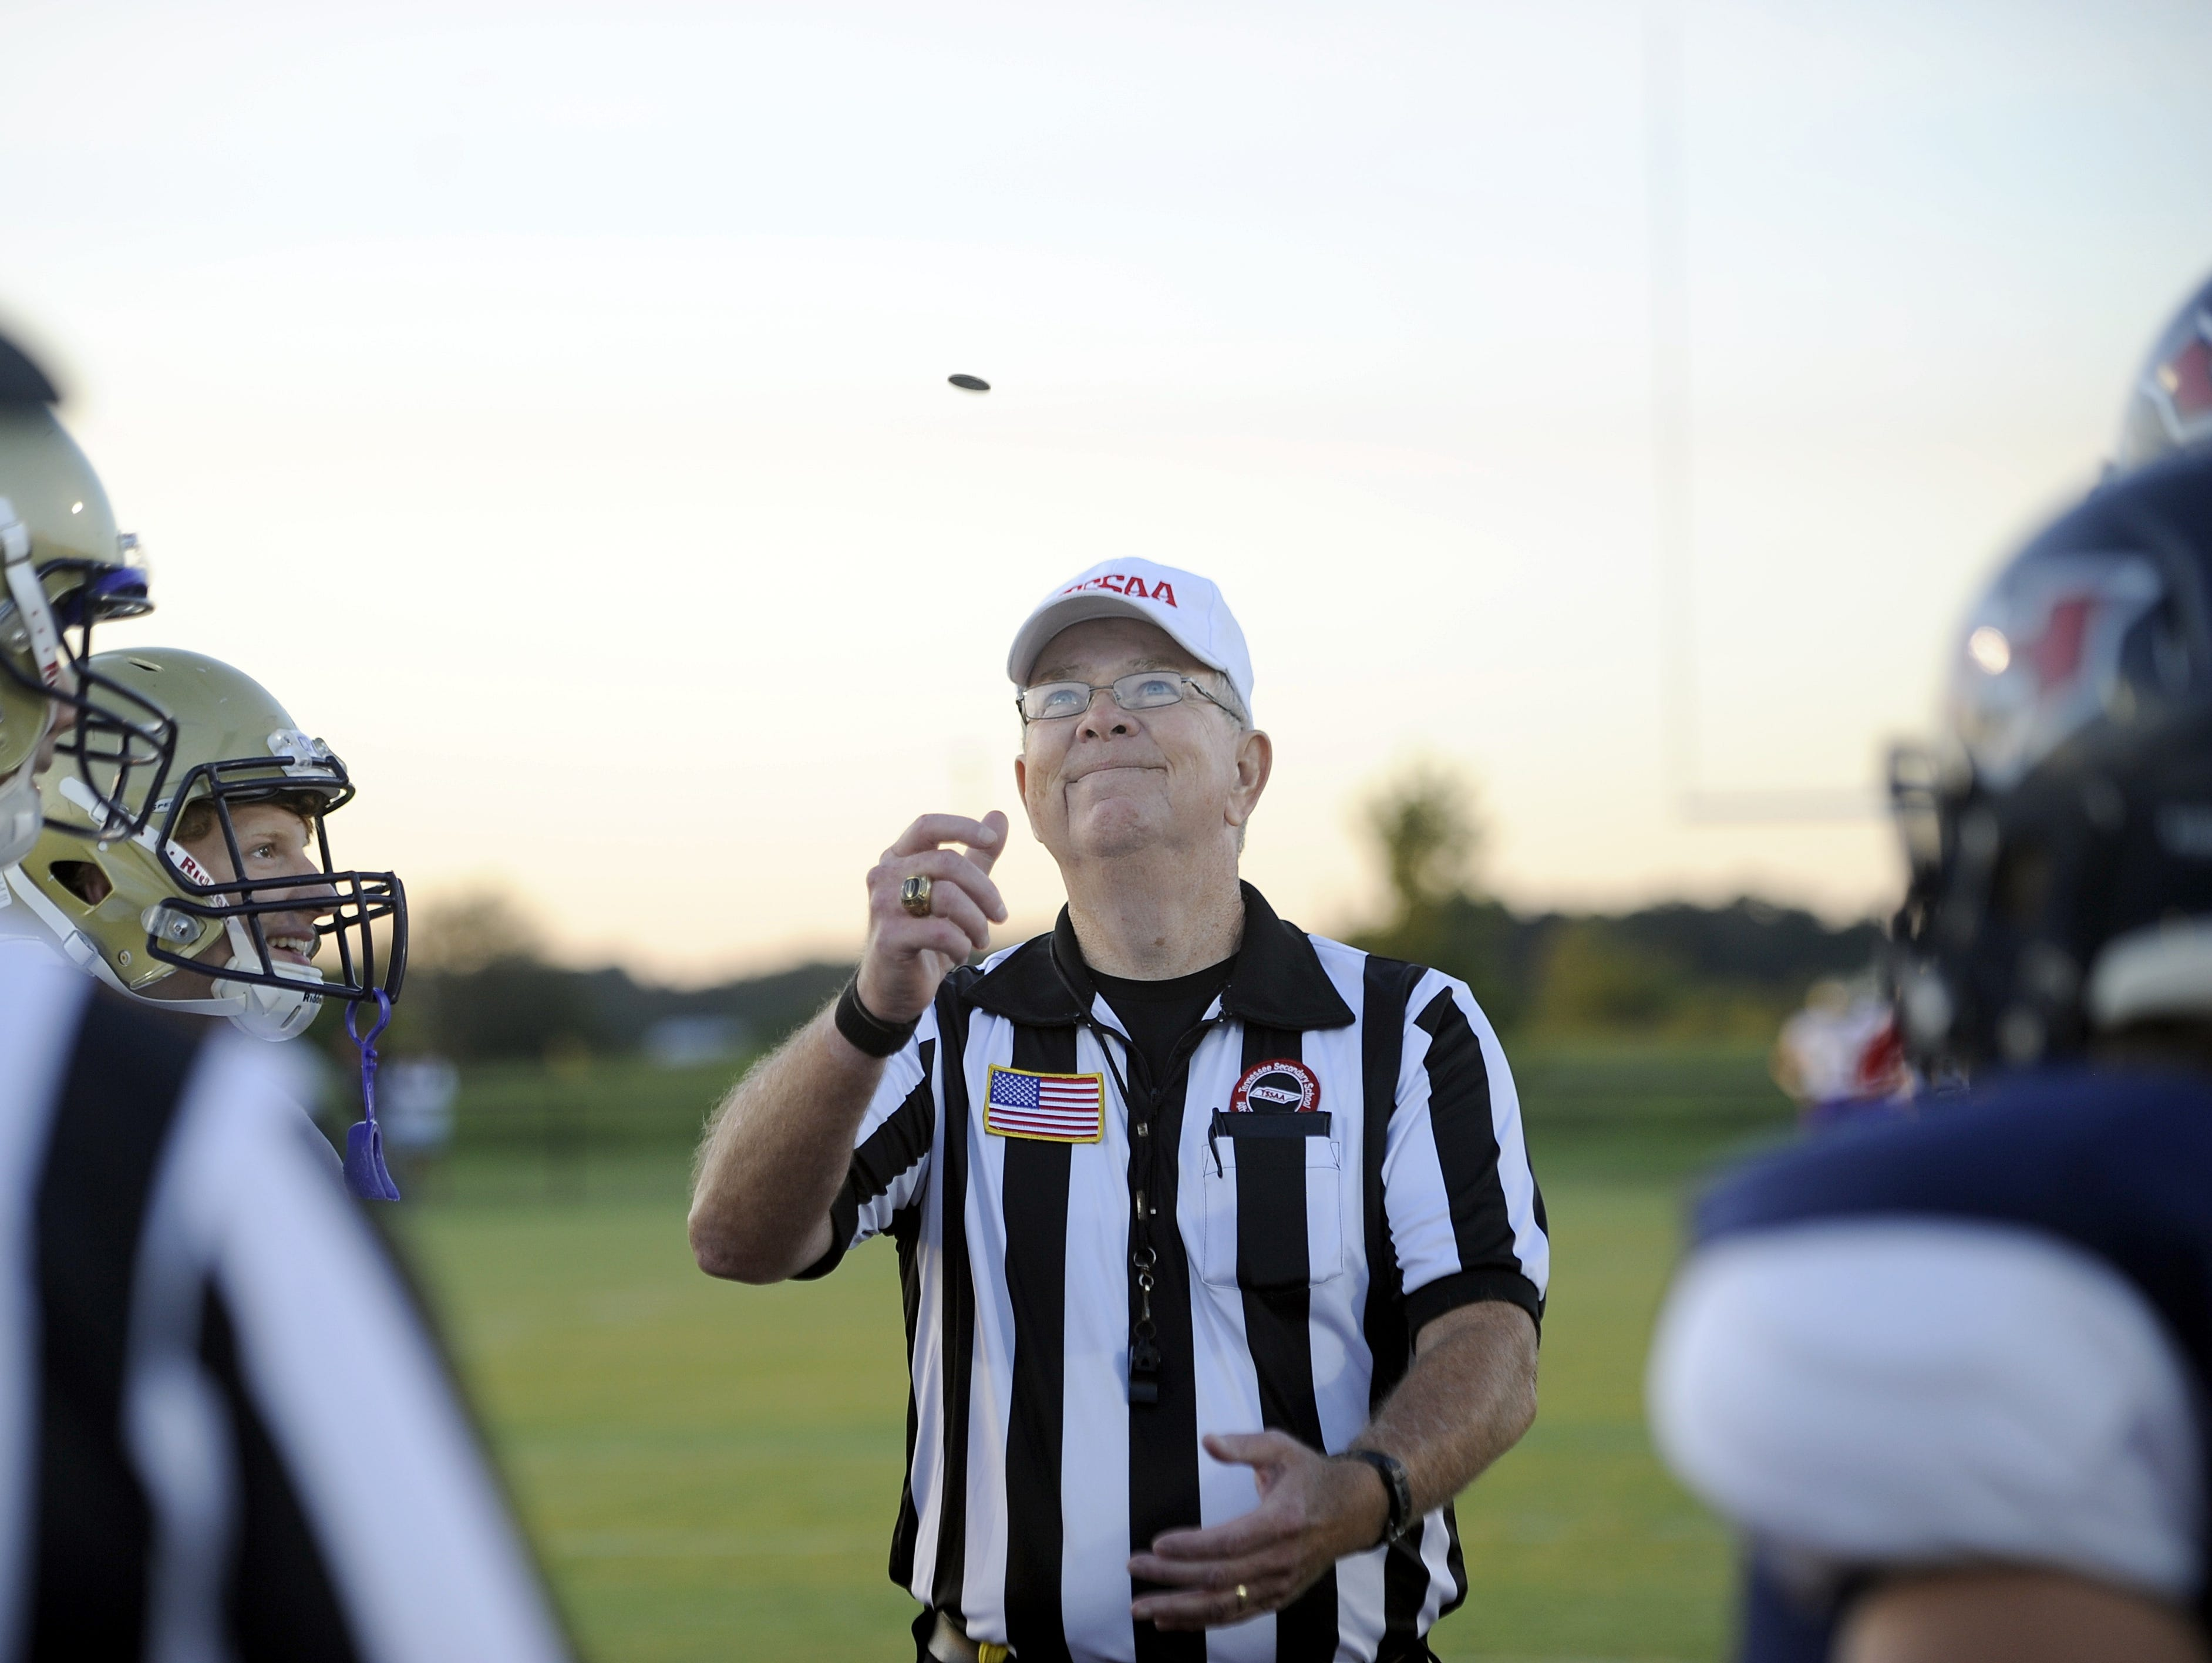 Referee Jody Swearingen of the North Middle Football Officials Association flips the coin prior to a game between Christ Presbyterian Academy and White House-Heritage.